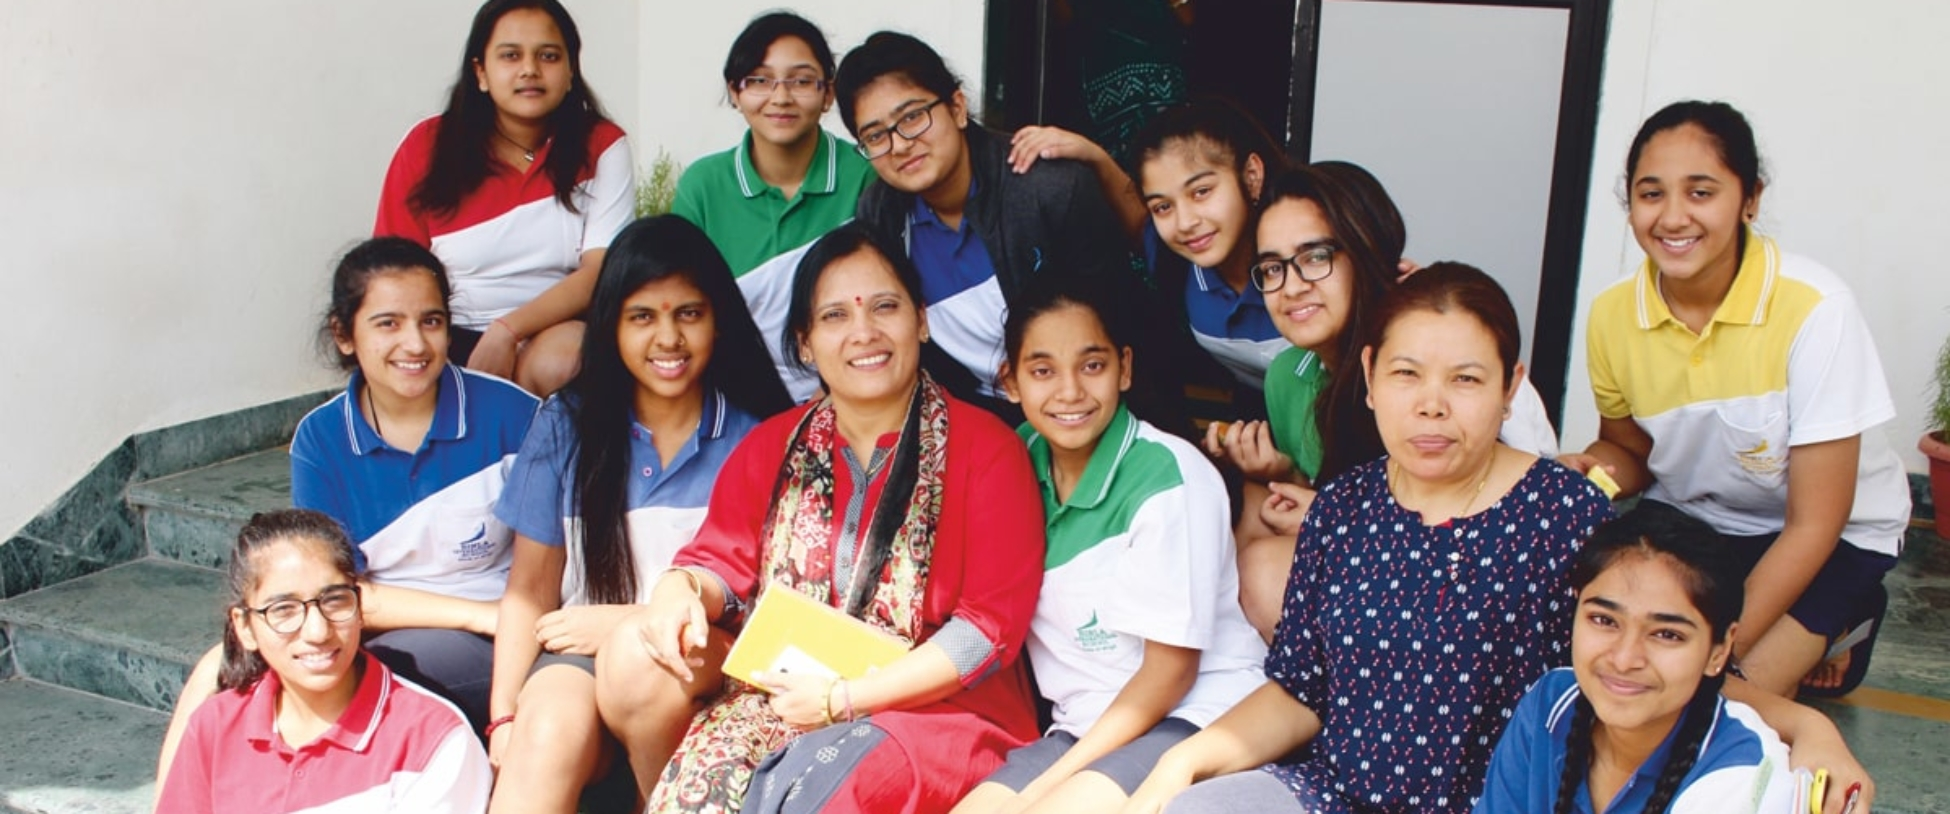 Birla students pastol care group photo